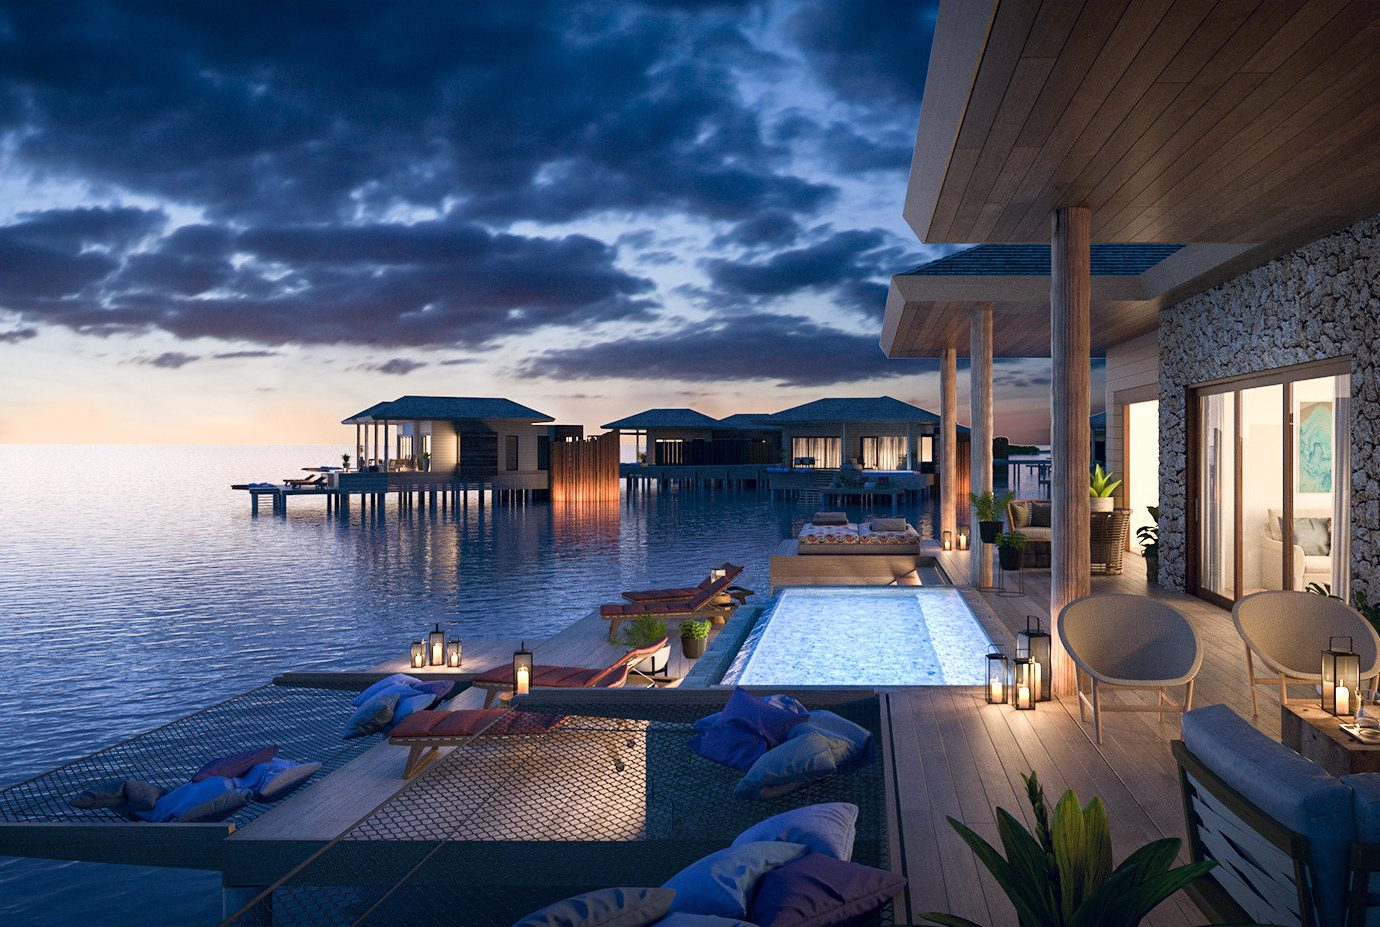 Hotels water sky outdoor scene vacation estate house Resort swimming pool Sea overlooking day several